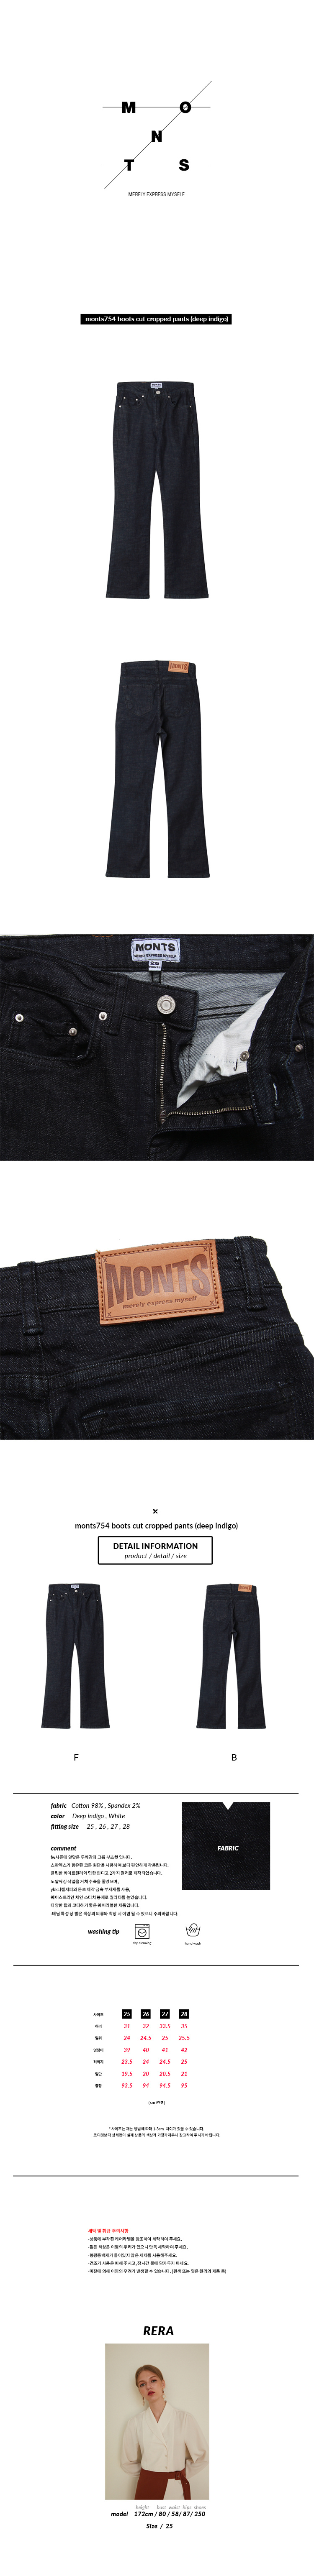 몬츠(MONTS) monts754 boots cut cropped pants (deep indigo)